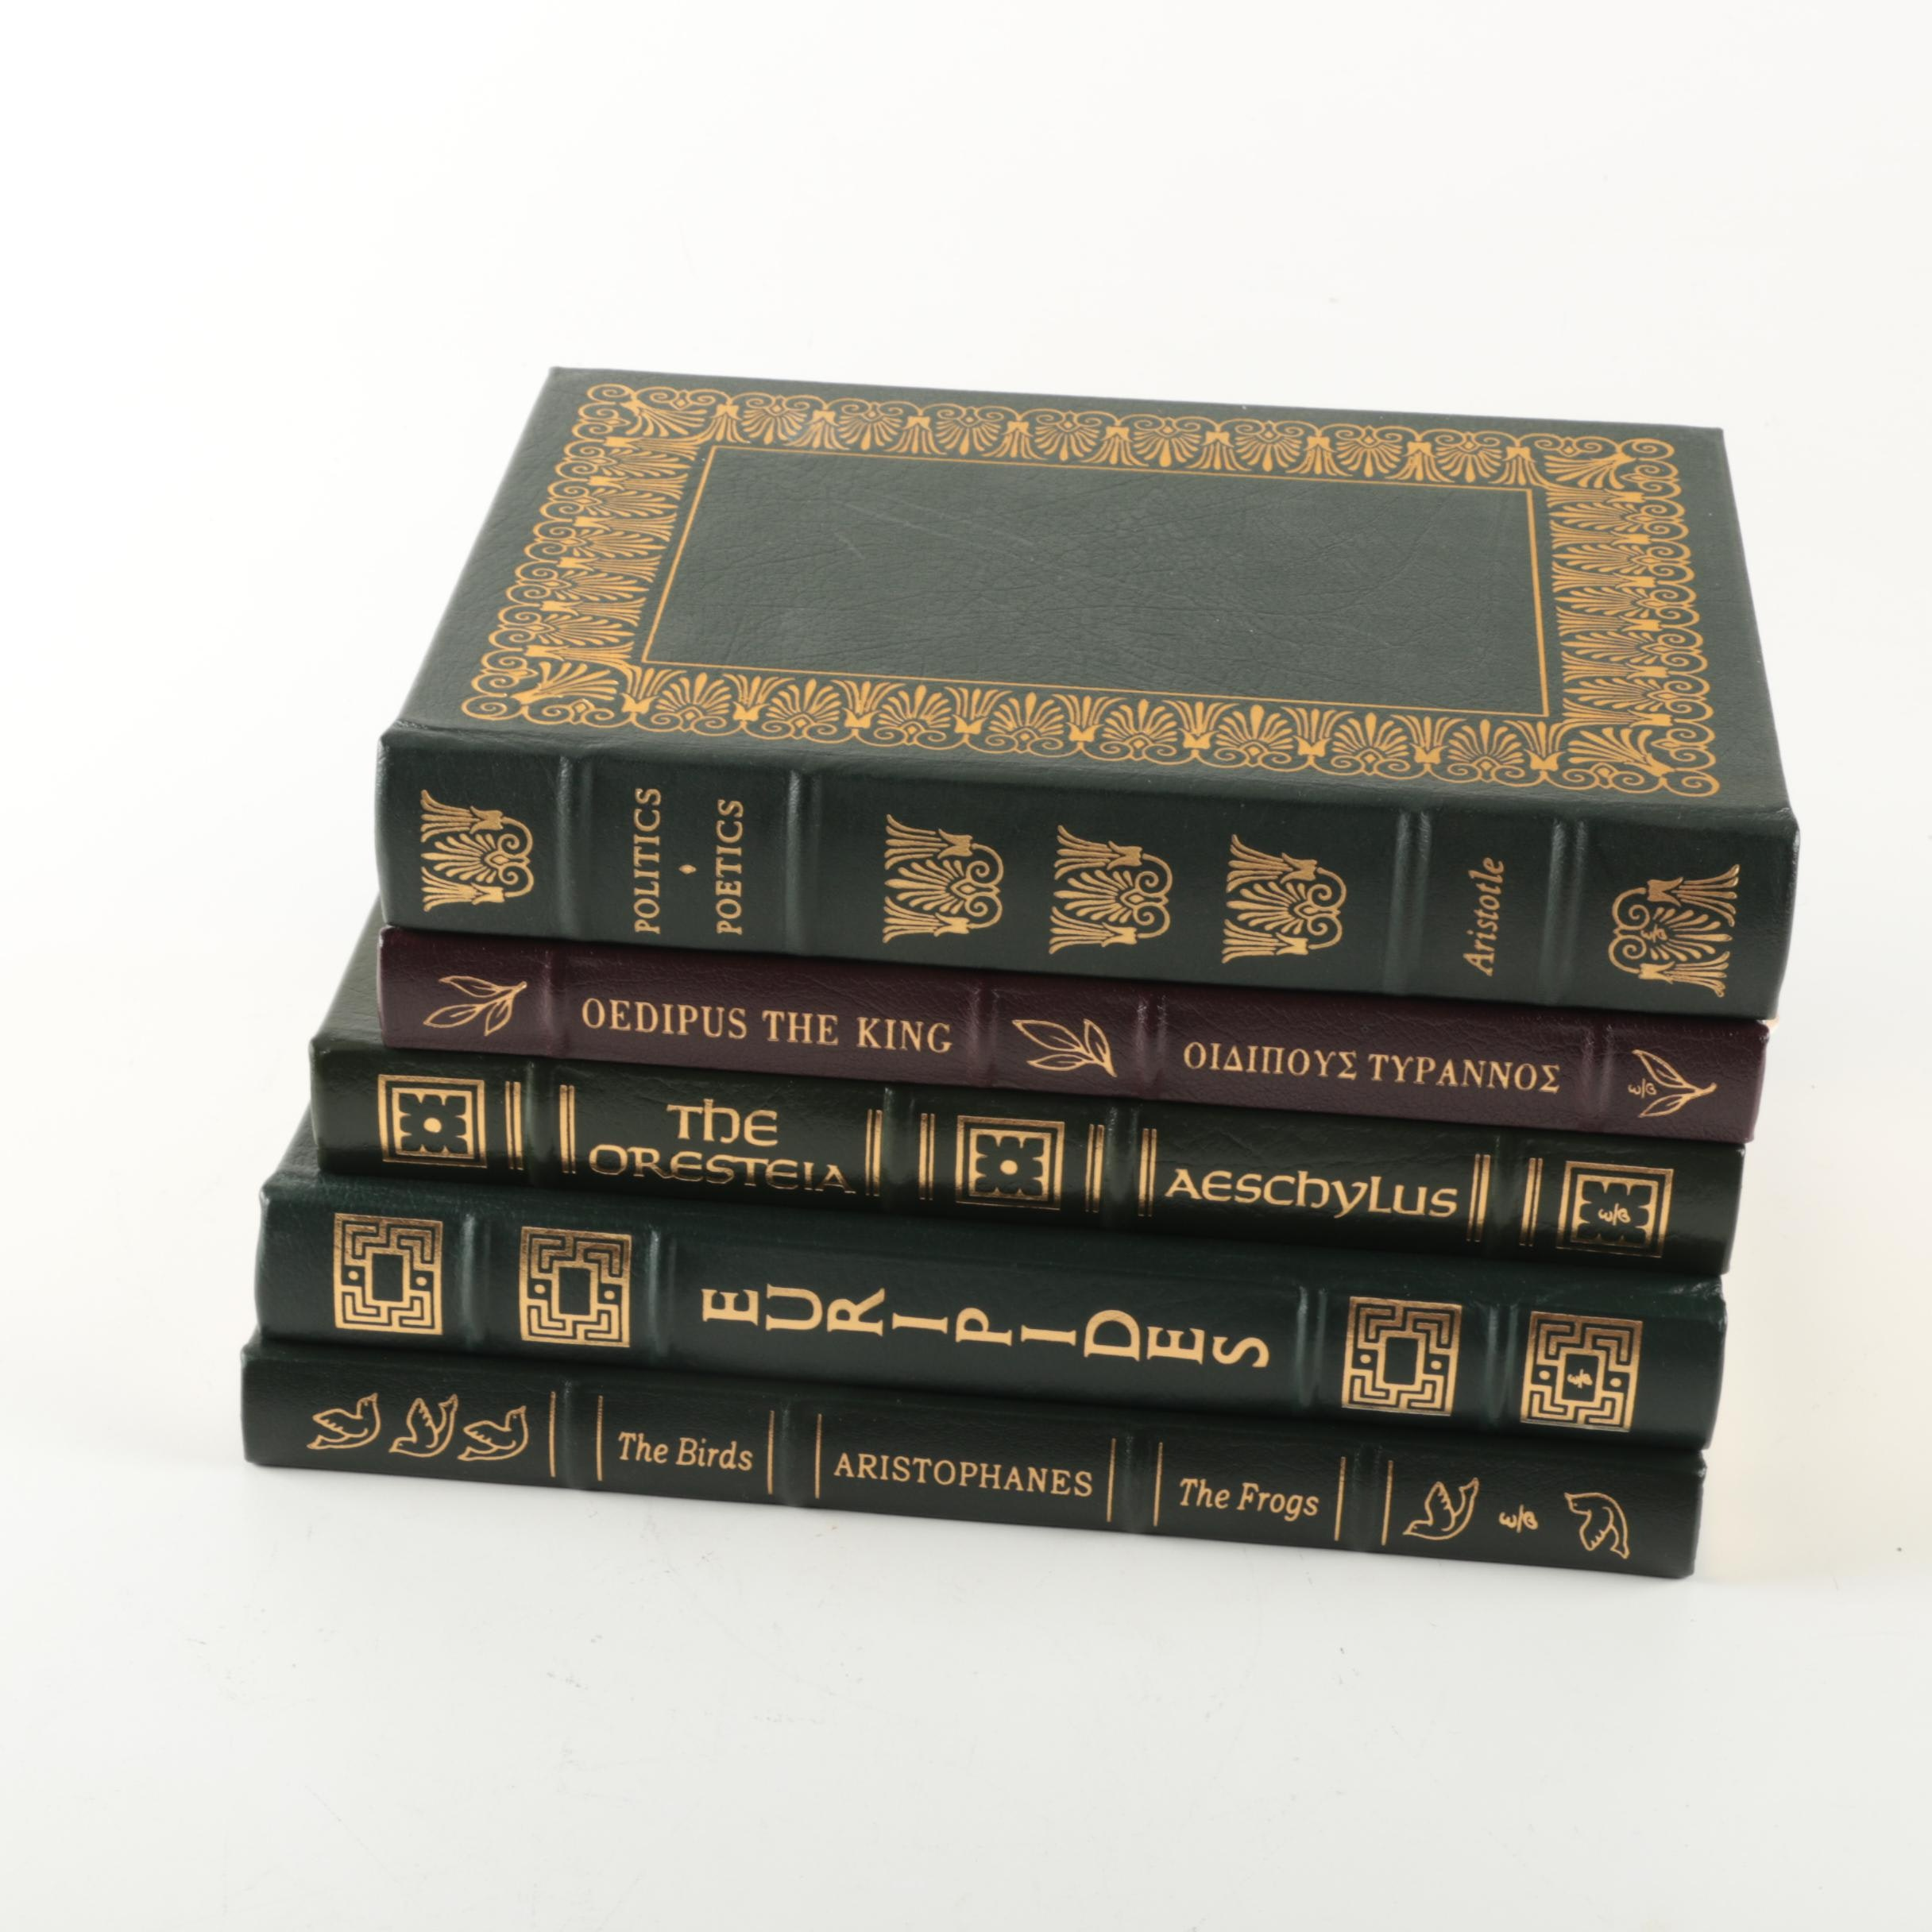 Easton Press Edition Novels featuring Aristotle and Sophocles